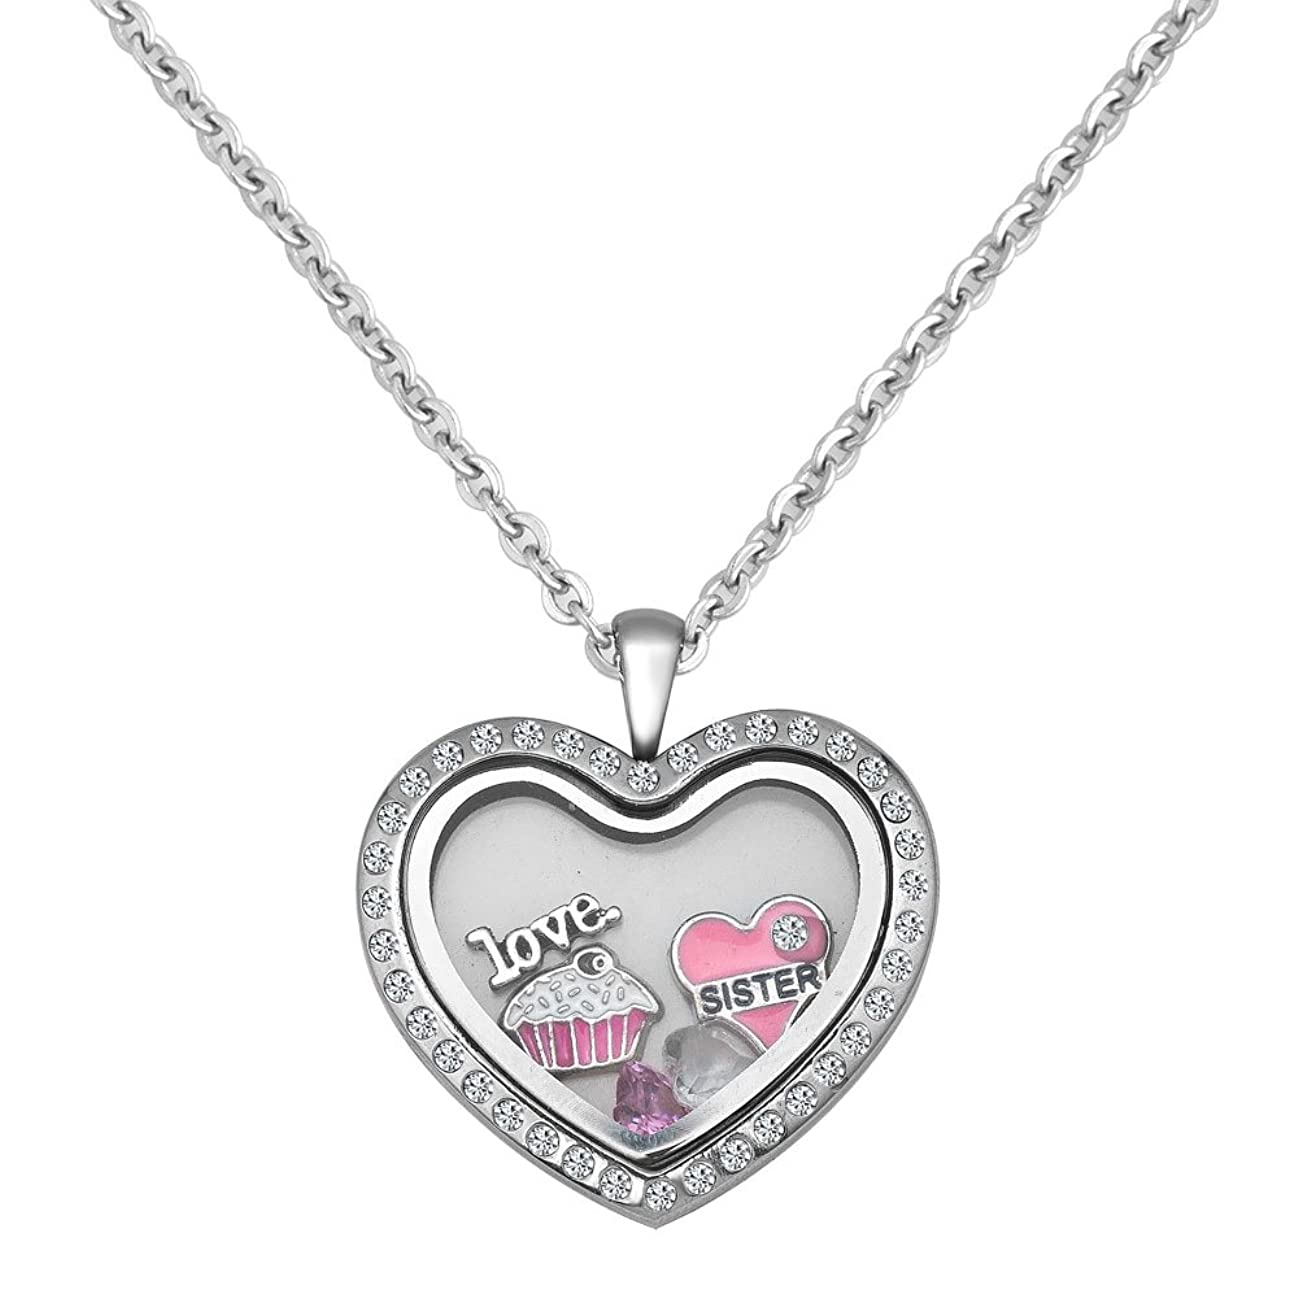 LuckyJewelry Sister Necklace I Love You Floating Charm Memory Heart Locket Magnetic Pendant Necklaces